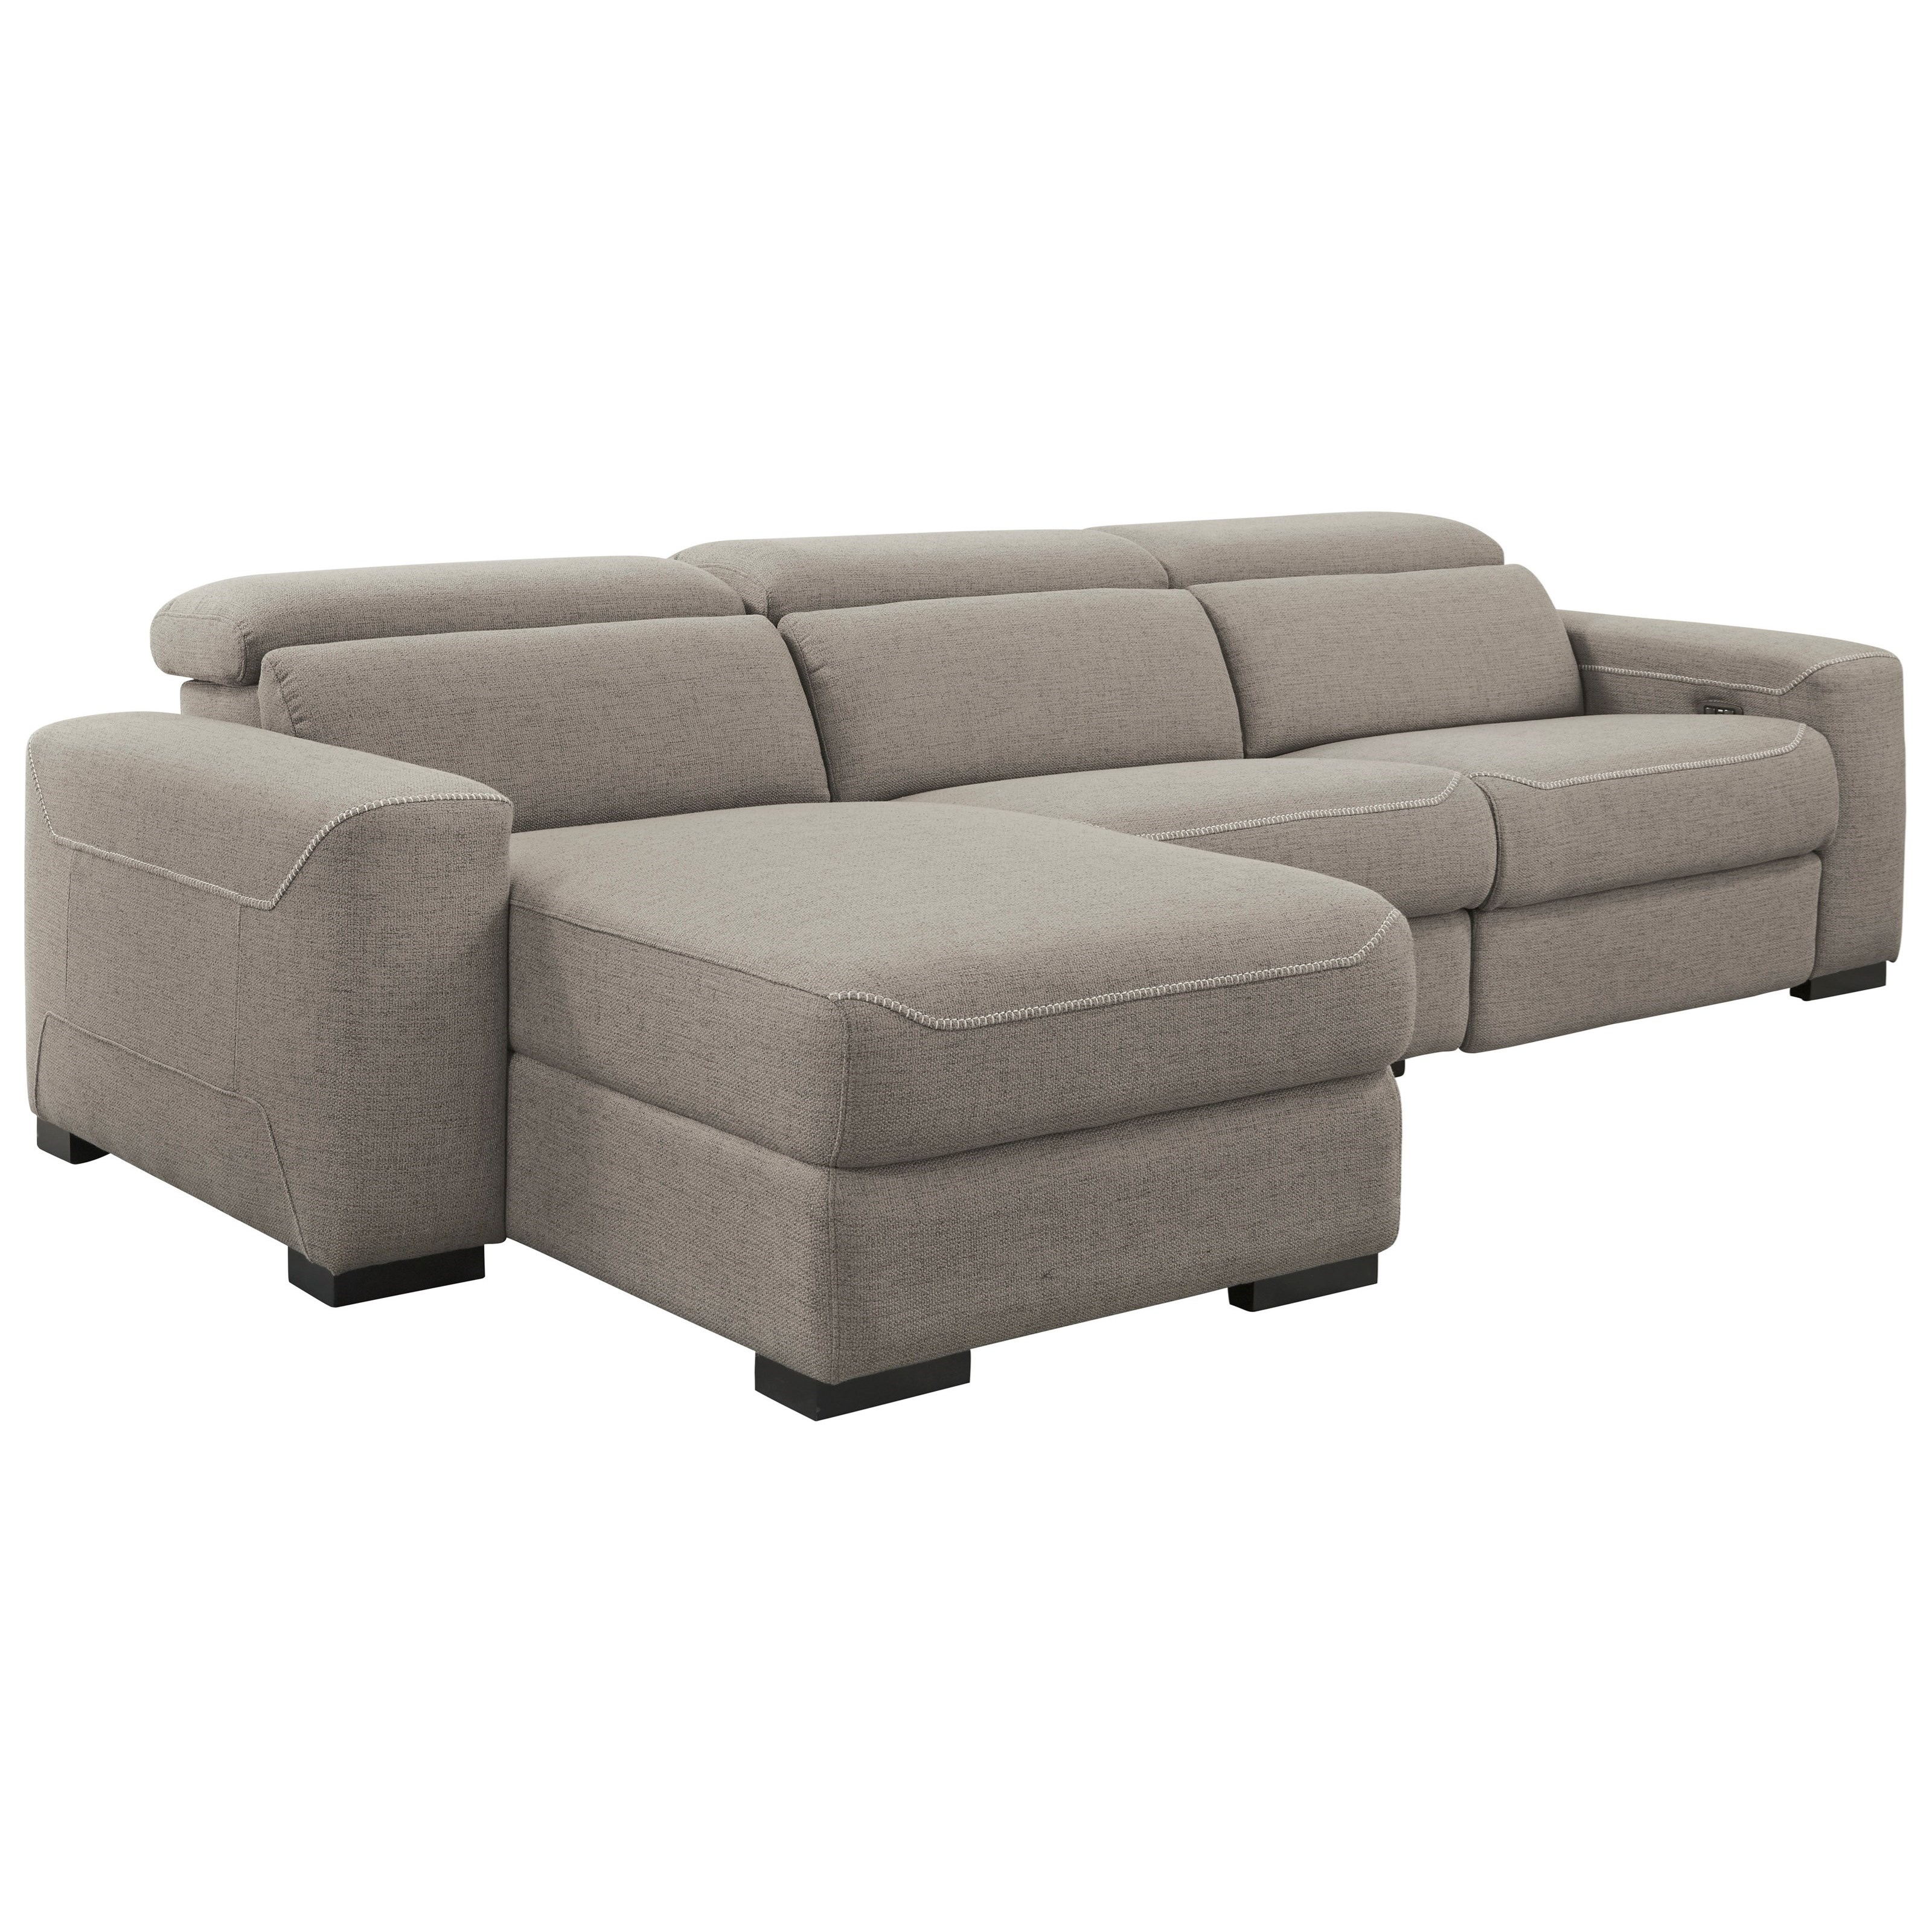 Mabton 3-Piece Power Reclining Sectional w/ Chaise by Signature Design by Ashley at Beck's Furniture